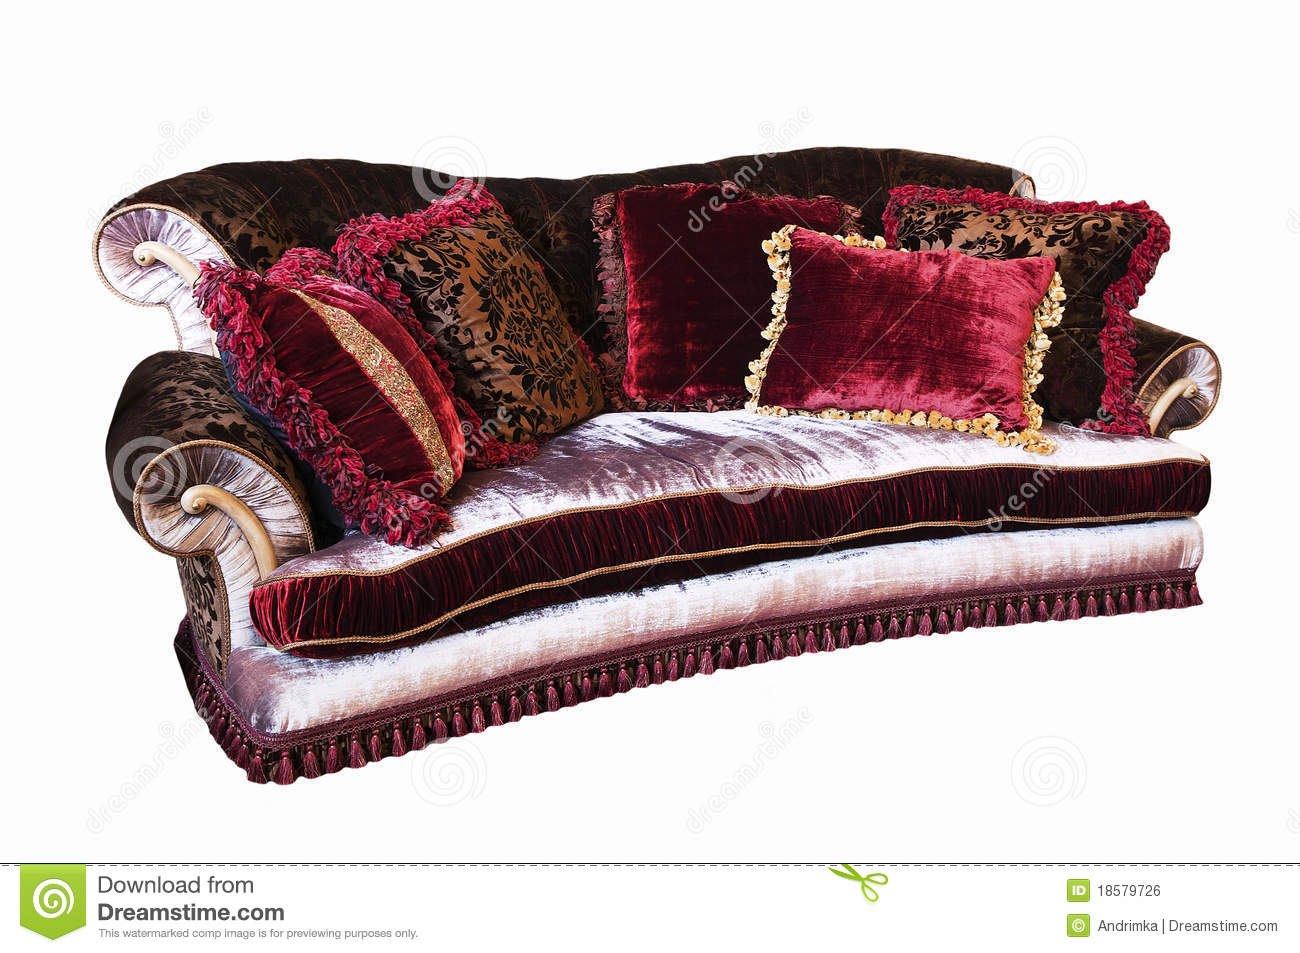 Download Old Fashioned Sofa Stock Photo. Image Of Floral, Elegance    18579726